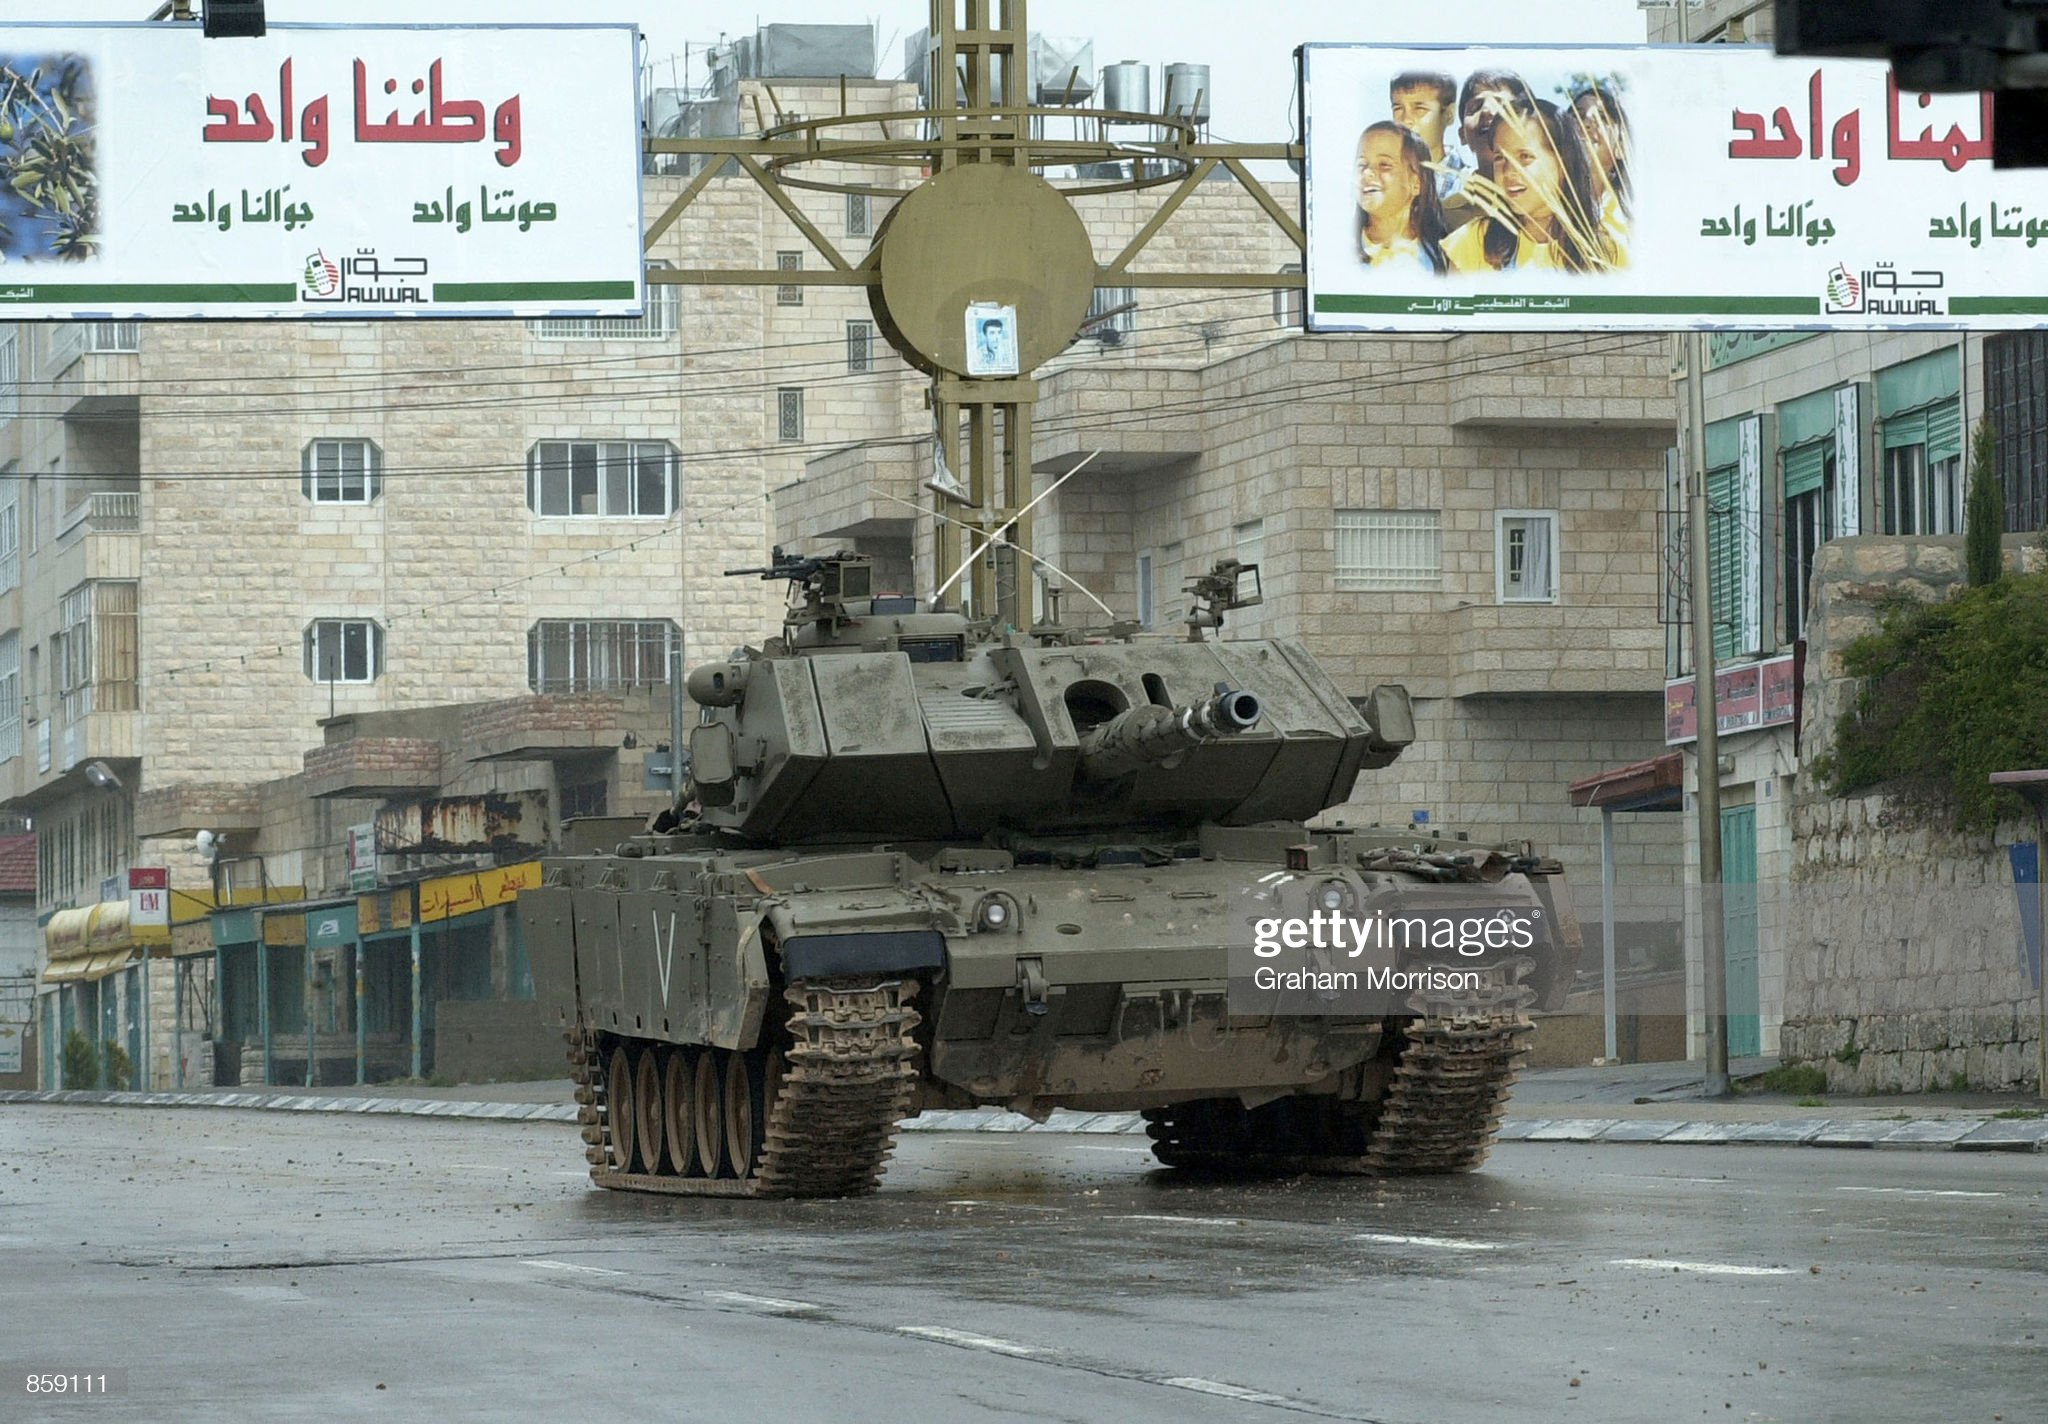 https://media.gettyimages.com/photos/an-israeli-tank-pauses-on-hebron-road-which-divides-the-west-bank-of-picture-id859111?s=2048x2048